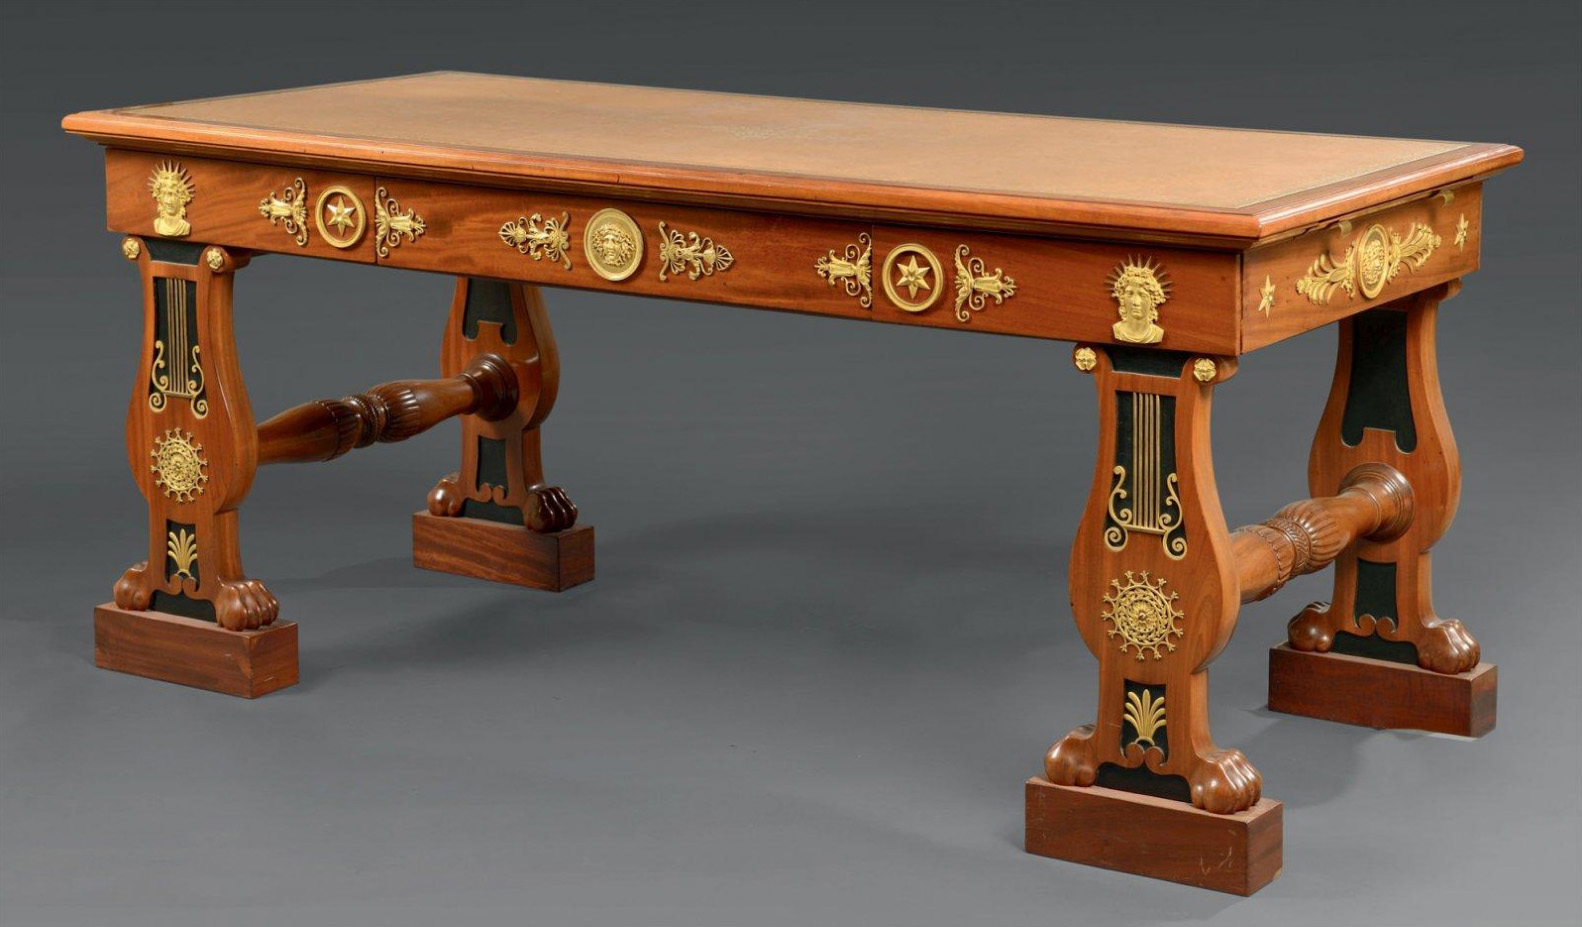 €156,250Attributed to F.-H.-G. Jacob-Desmalter, large Maréchal flat desk in mahogany wood and veneering, base with lyre motifs, bronze mou